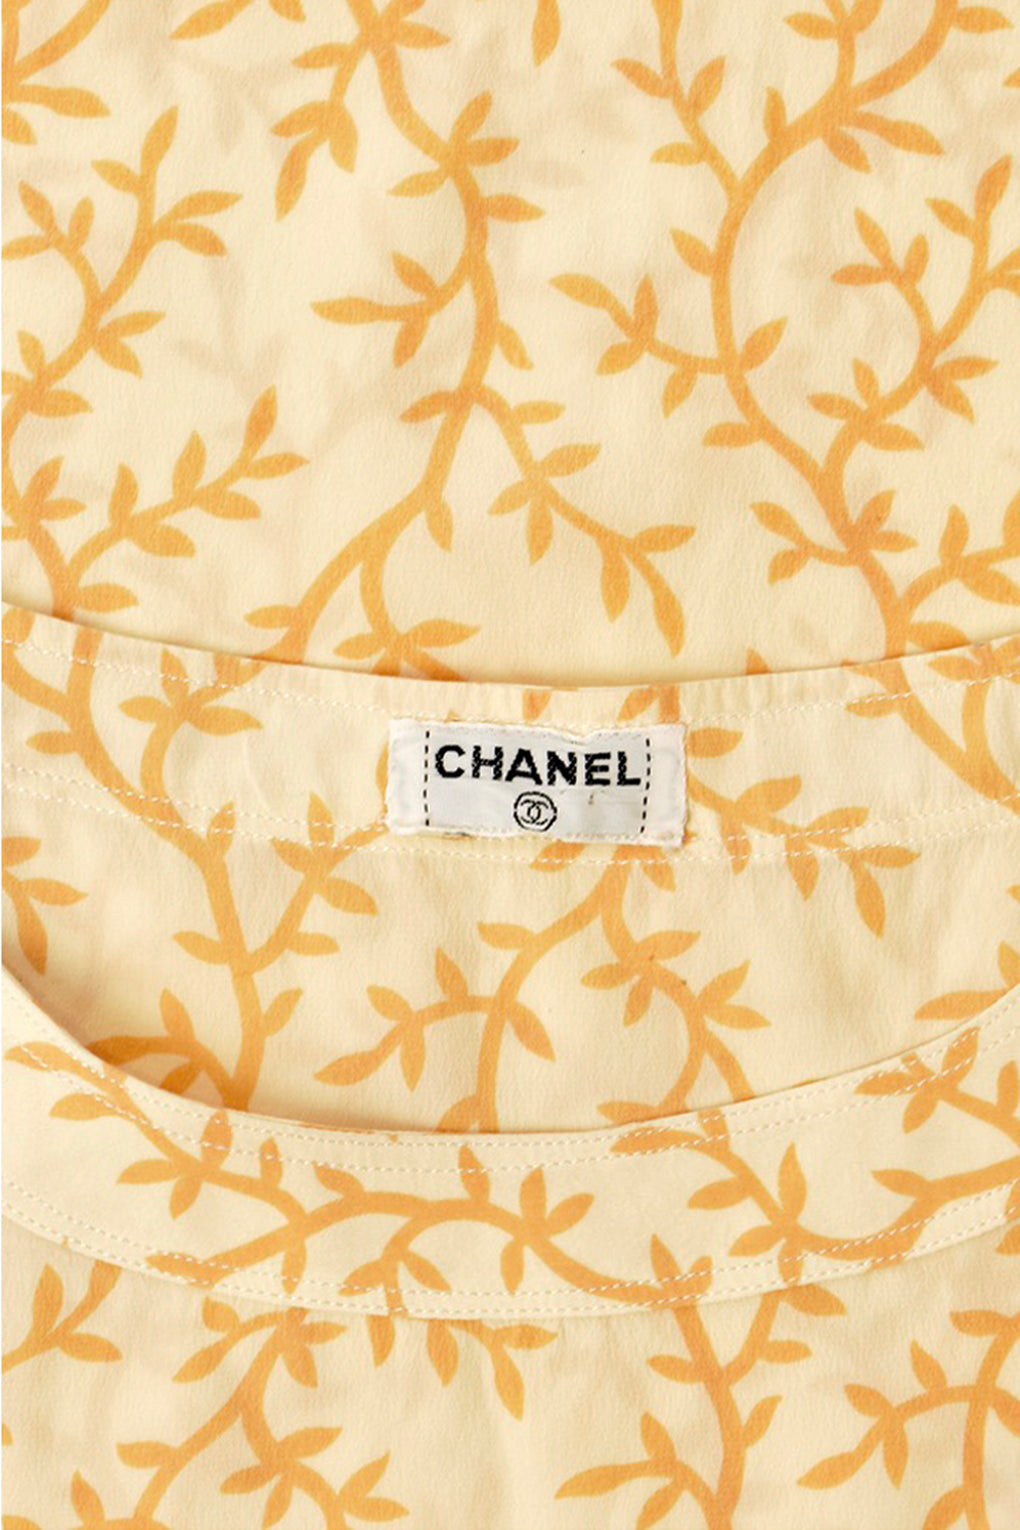 CHANEL silk vine print top / M-L